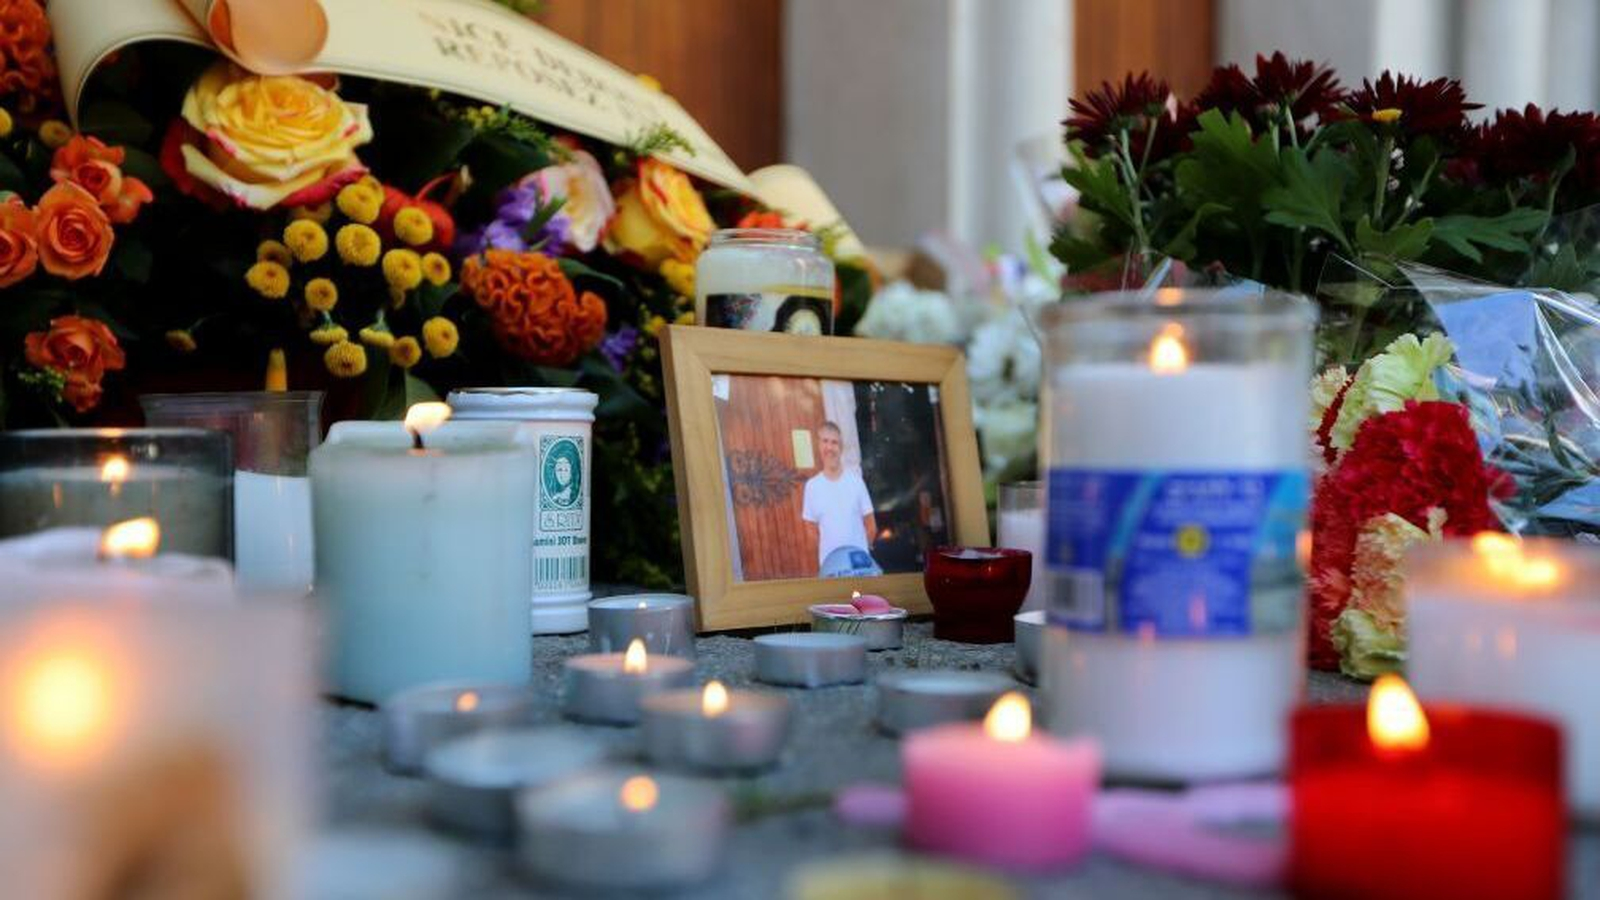 Minister warns of more militant attacks in France